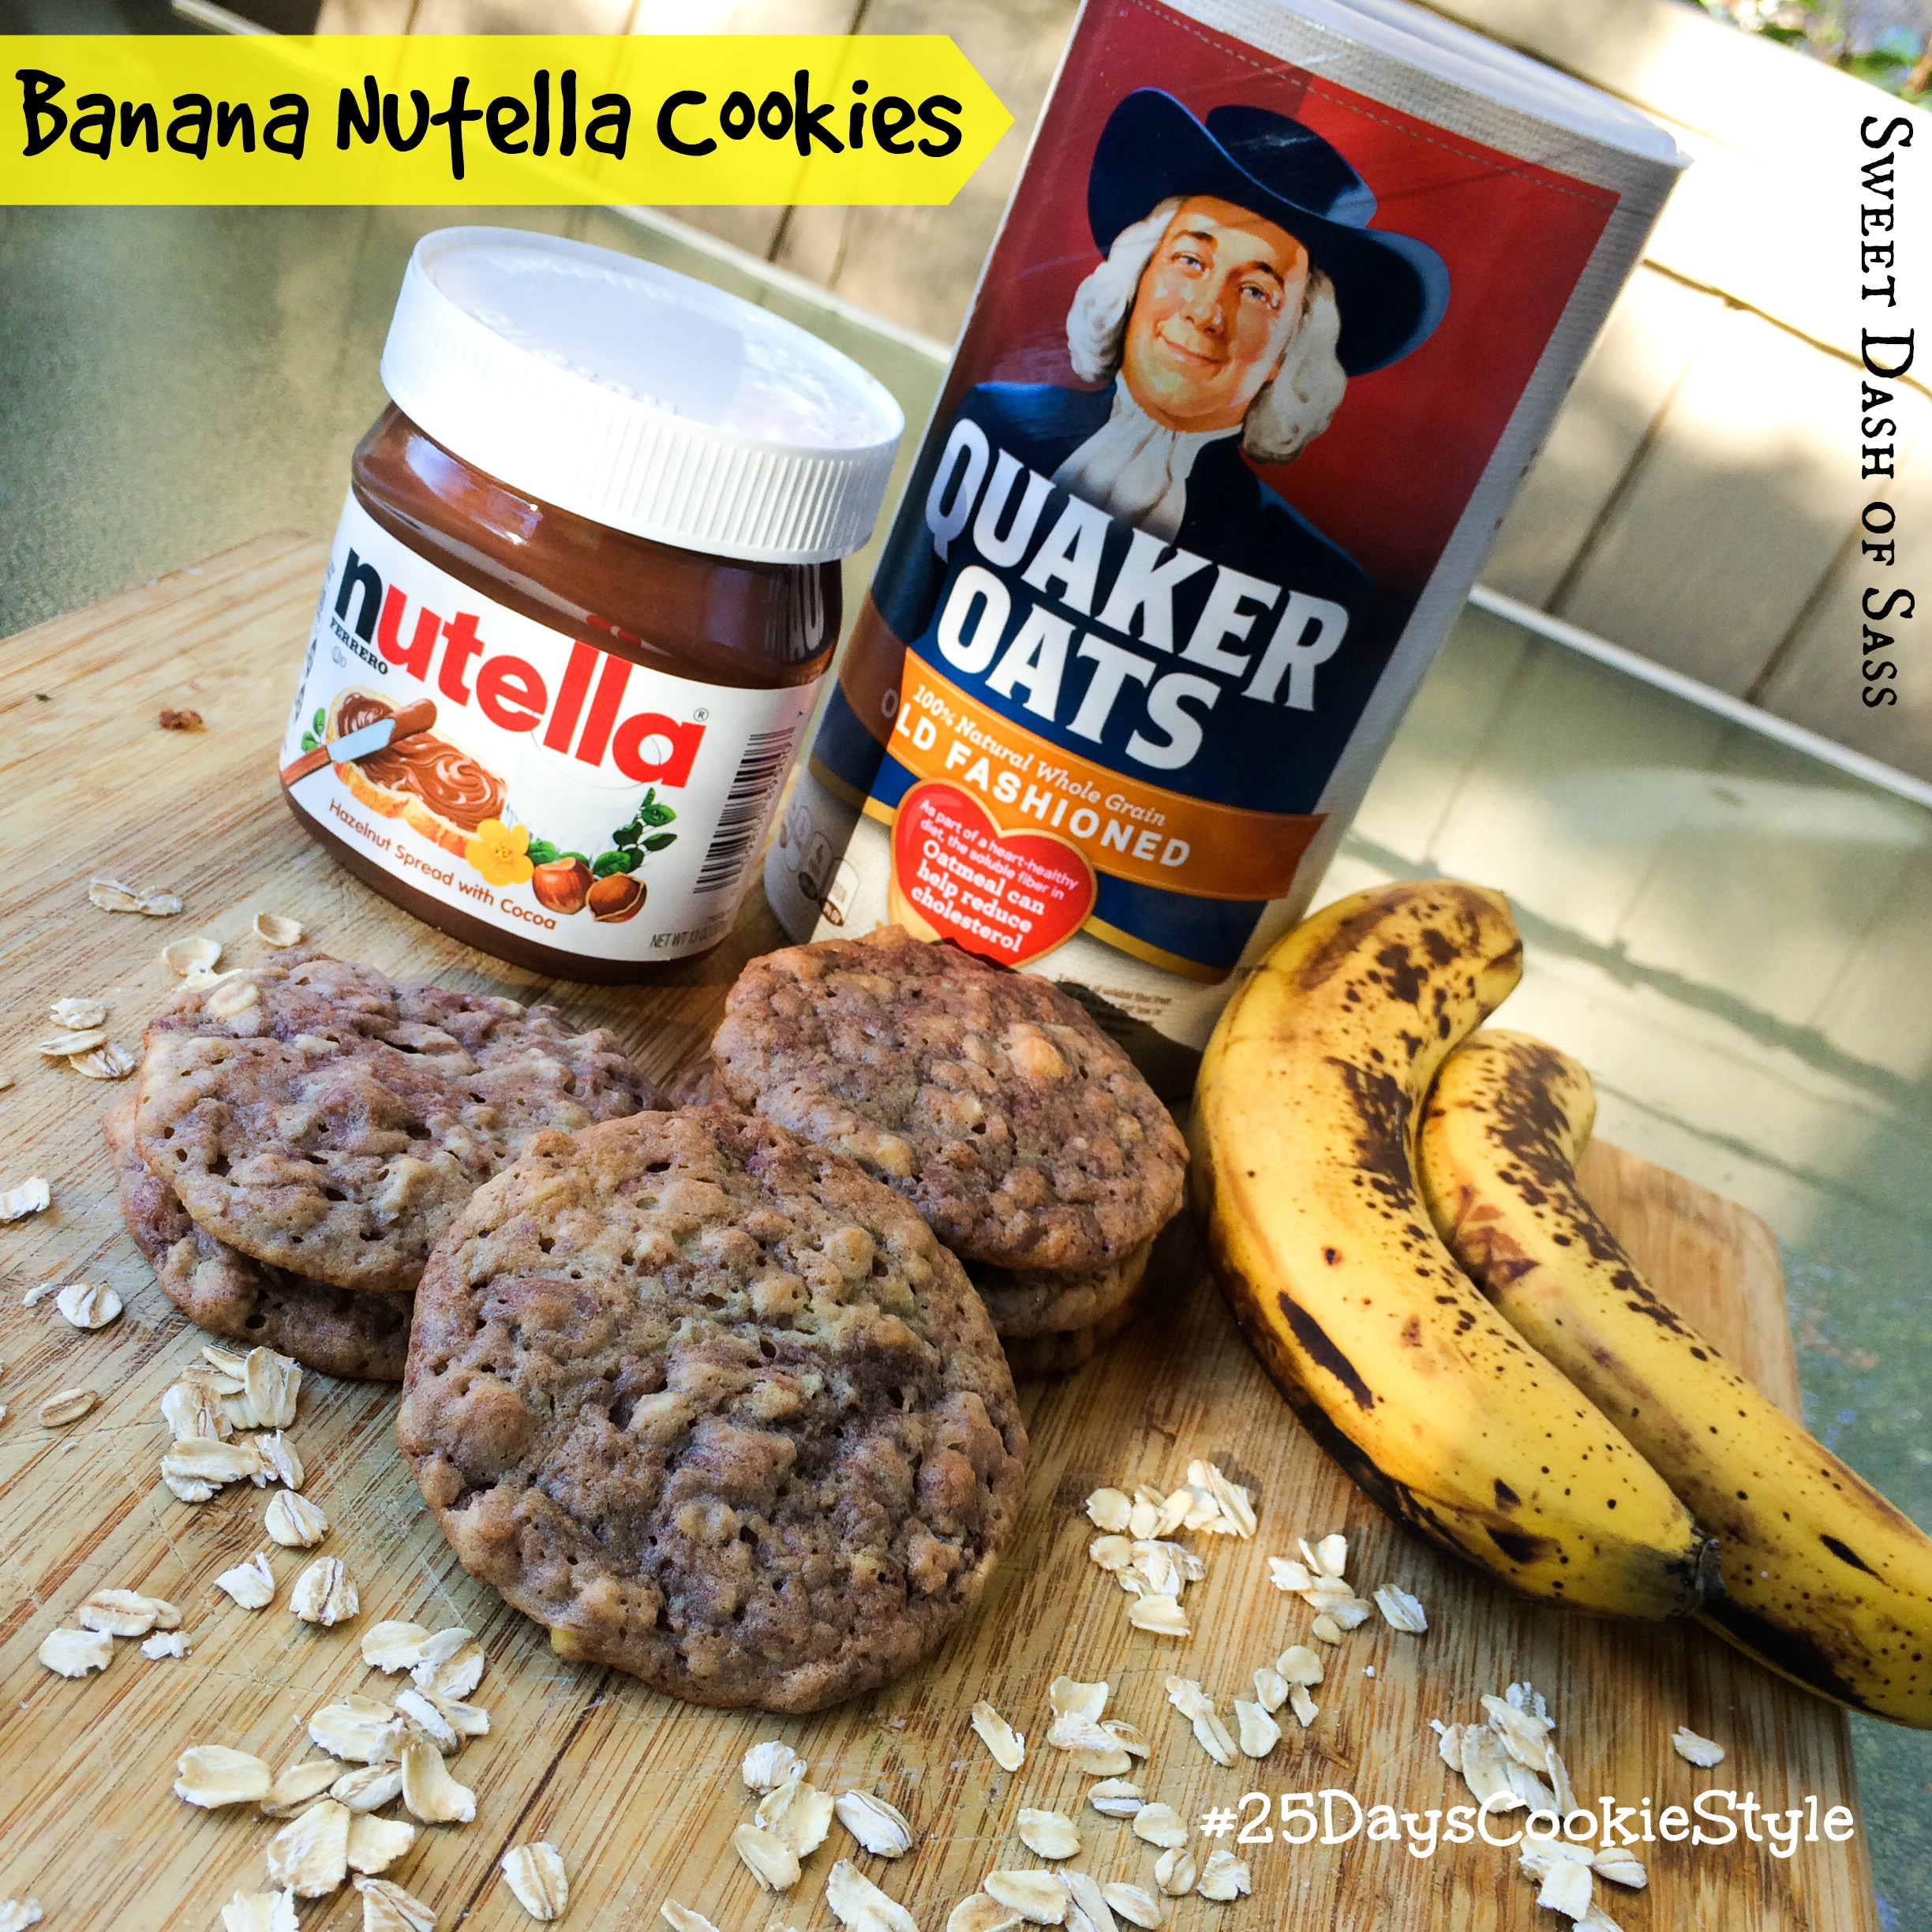 Banana Nutella Cookies -- These were a fan favorite this holiday season.  #25DaysCookieStyle www.SweetDashofSass.com